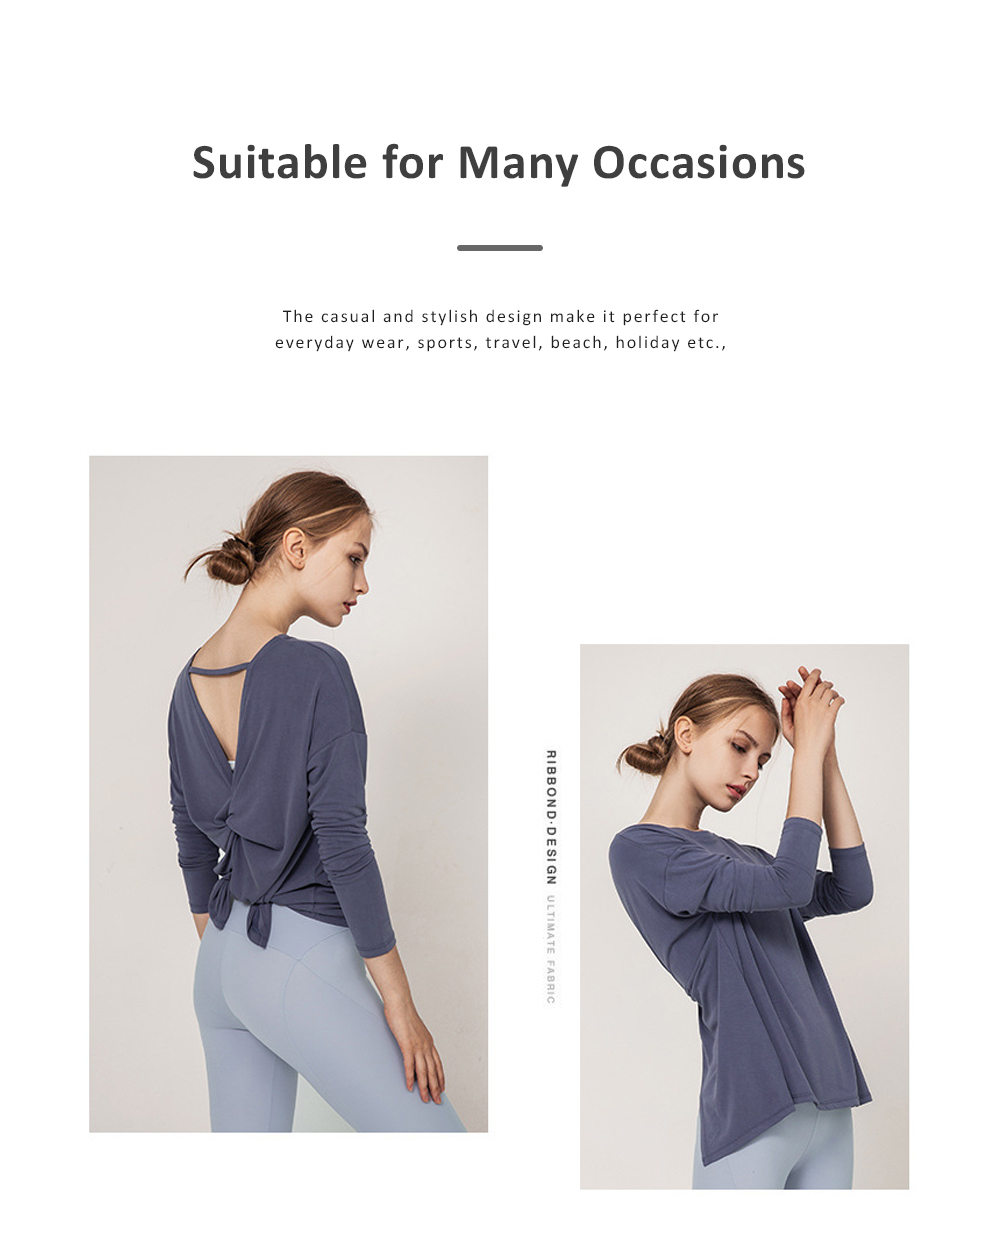 Yoga Tops Workout Shirts for Women with Sexy Backless and Long Sleeves Casual Loose Yoga Shirts Blouses 5